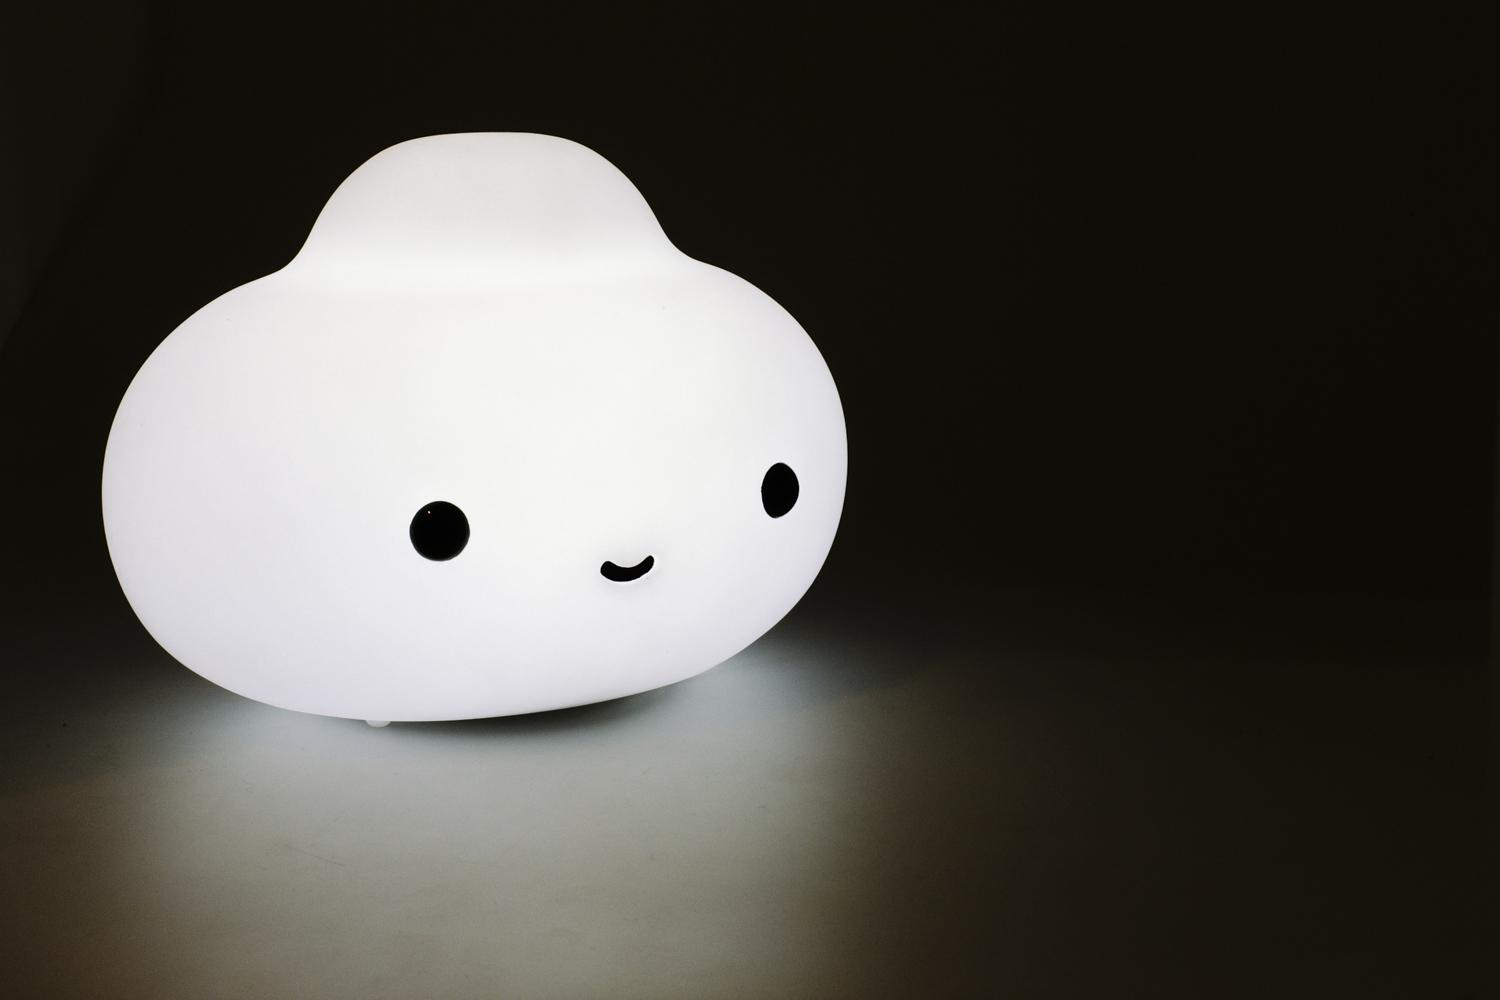 Presenting the most adorable night light ever.